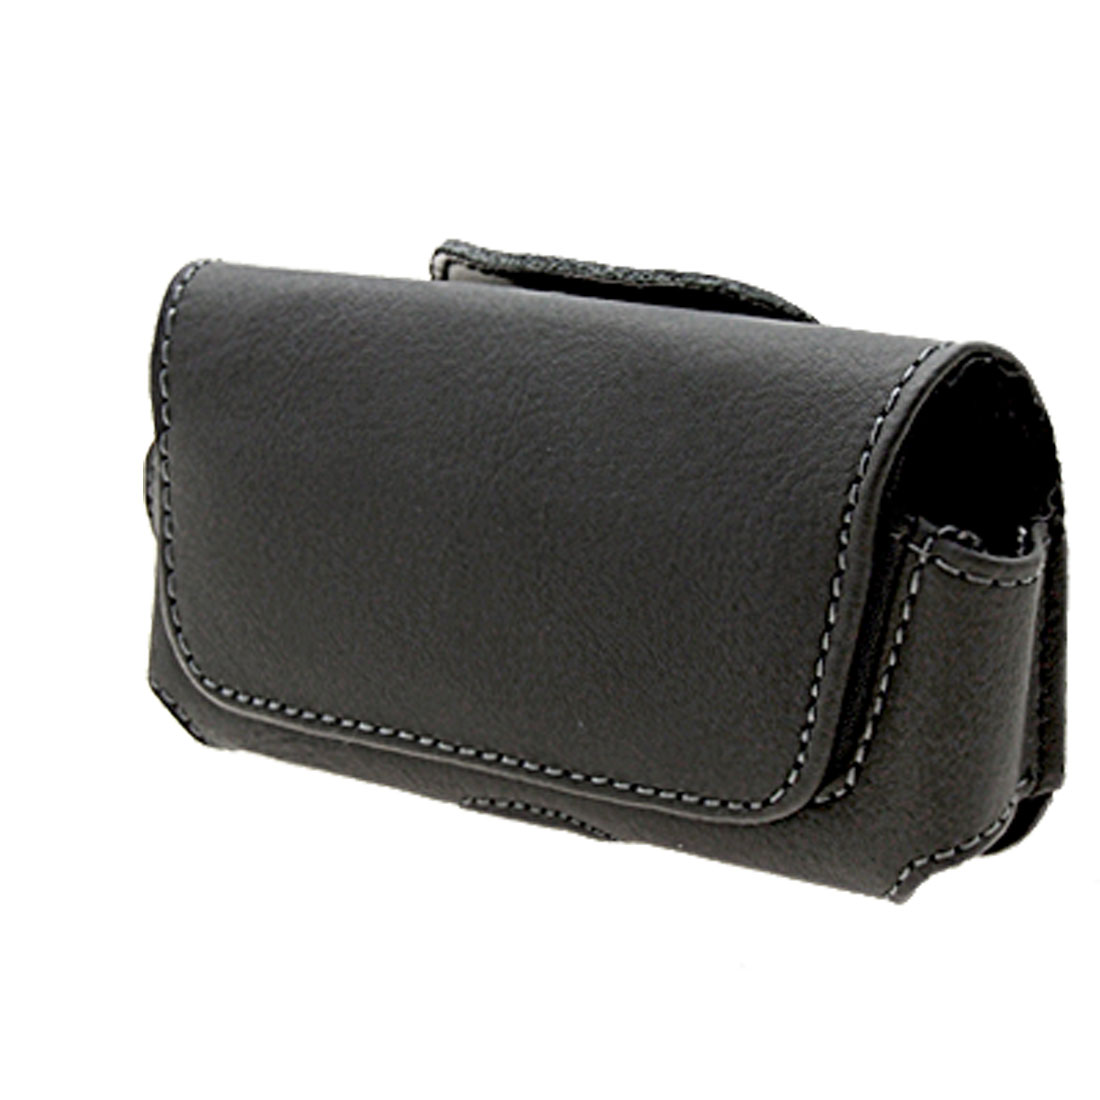 Belt Clip Design Leather Case Holder for Nokia 6500s